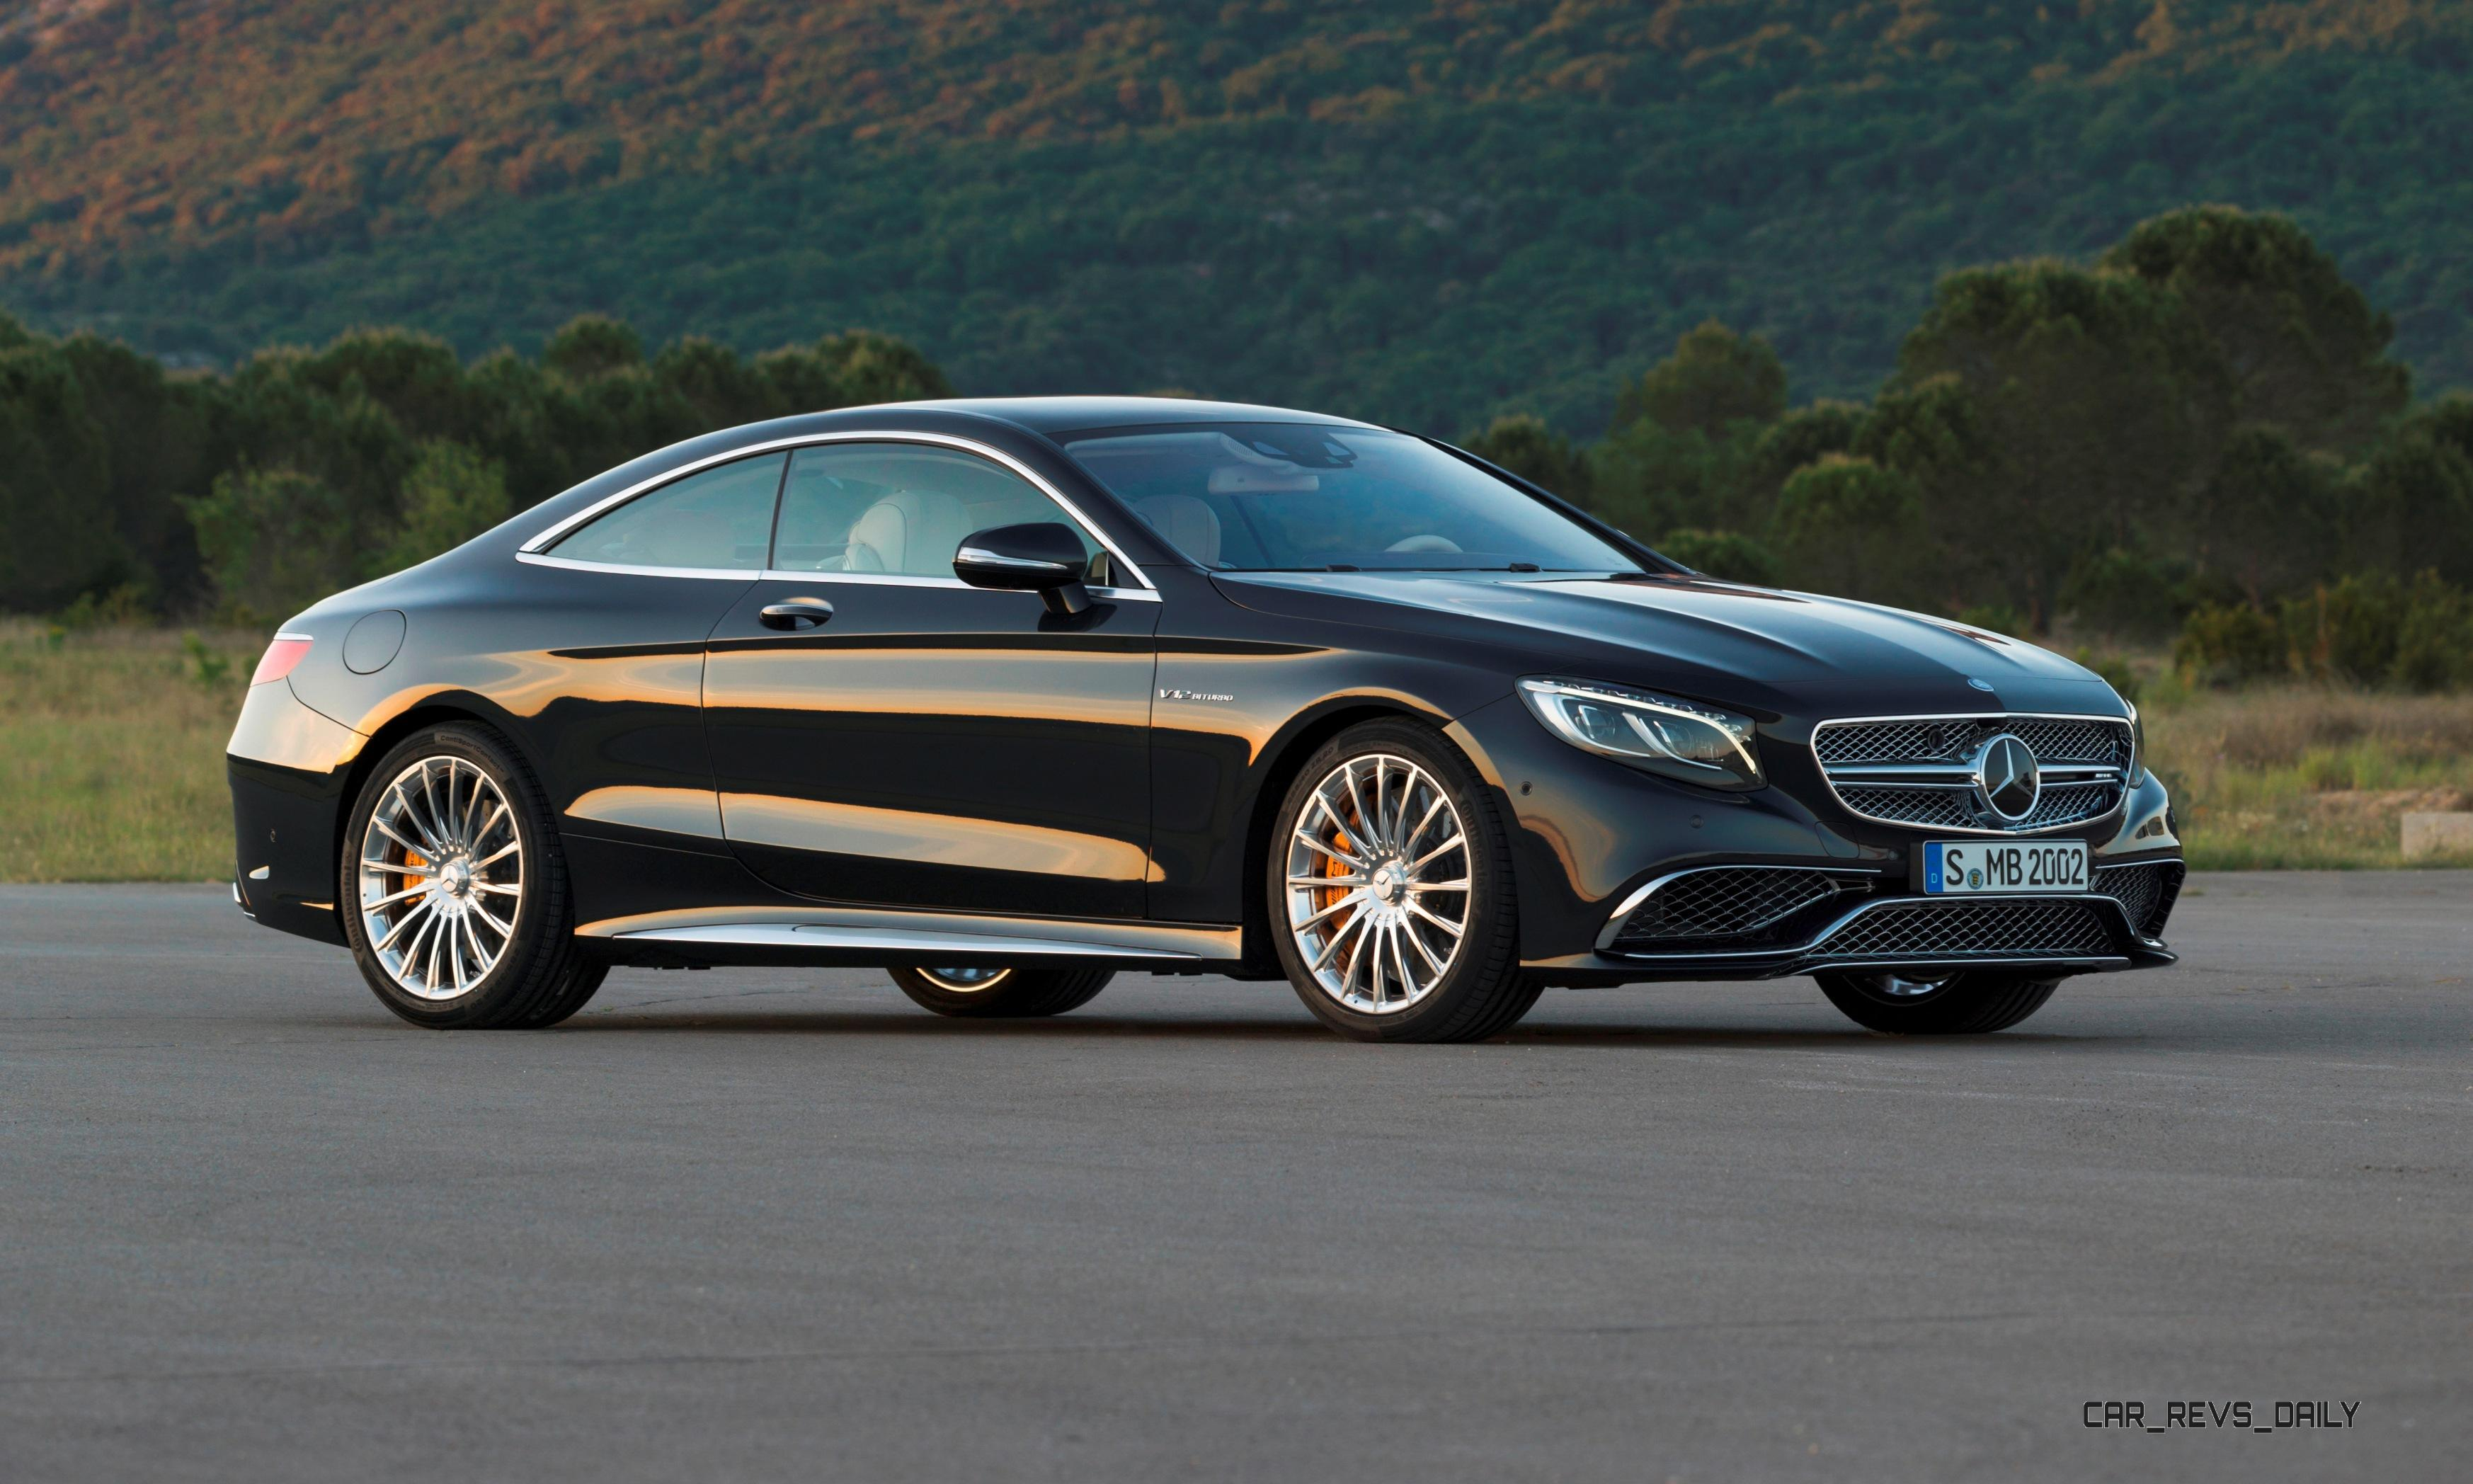 630hp v12 2015 mercedes benz s65 amg coupe has arrived. Black Bedroom Furniture Sets. Home Design Ideas